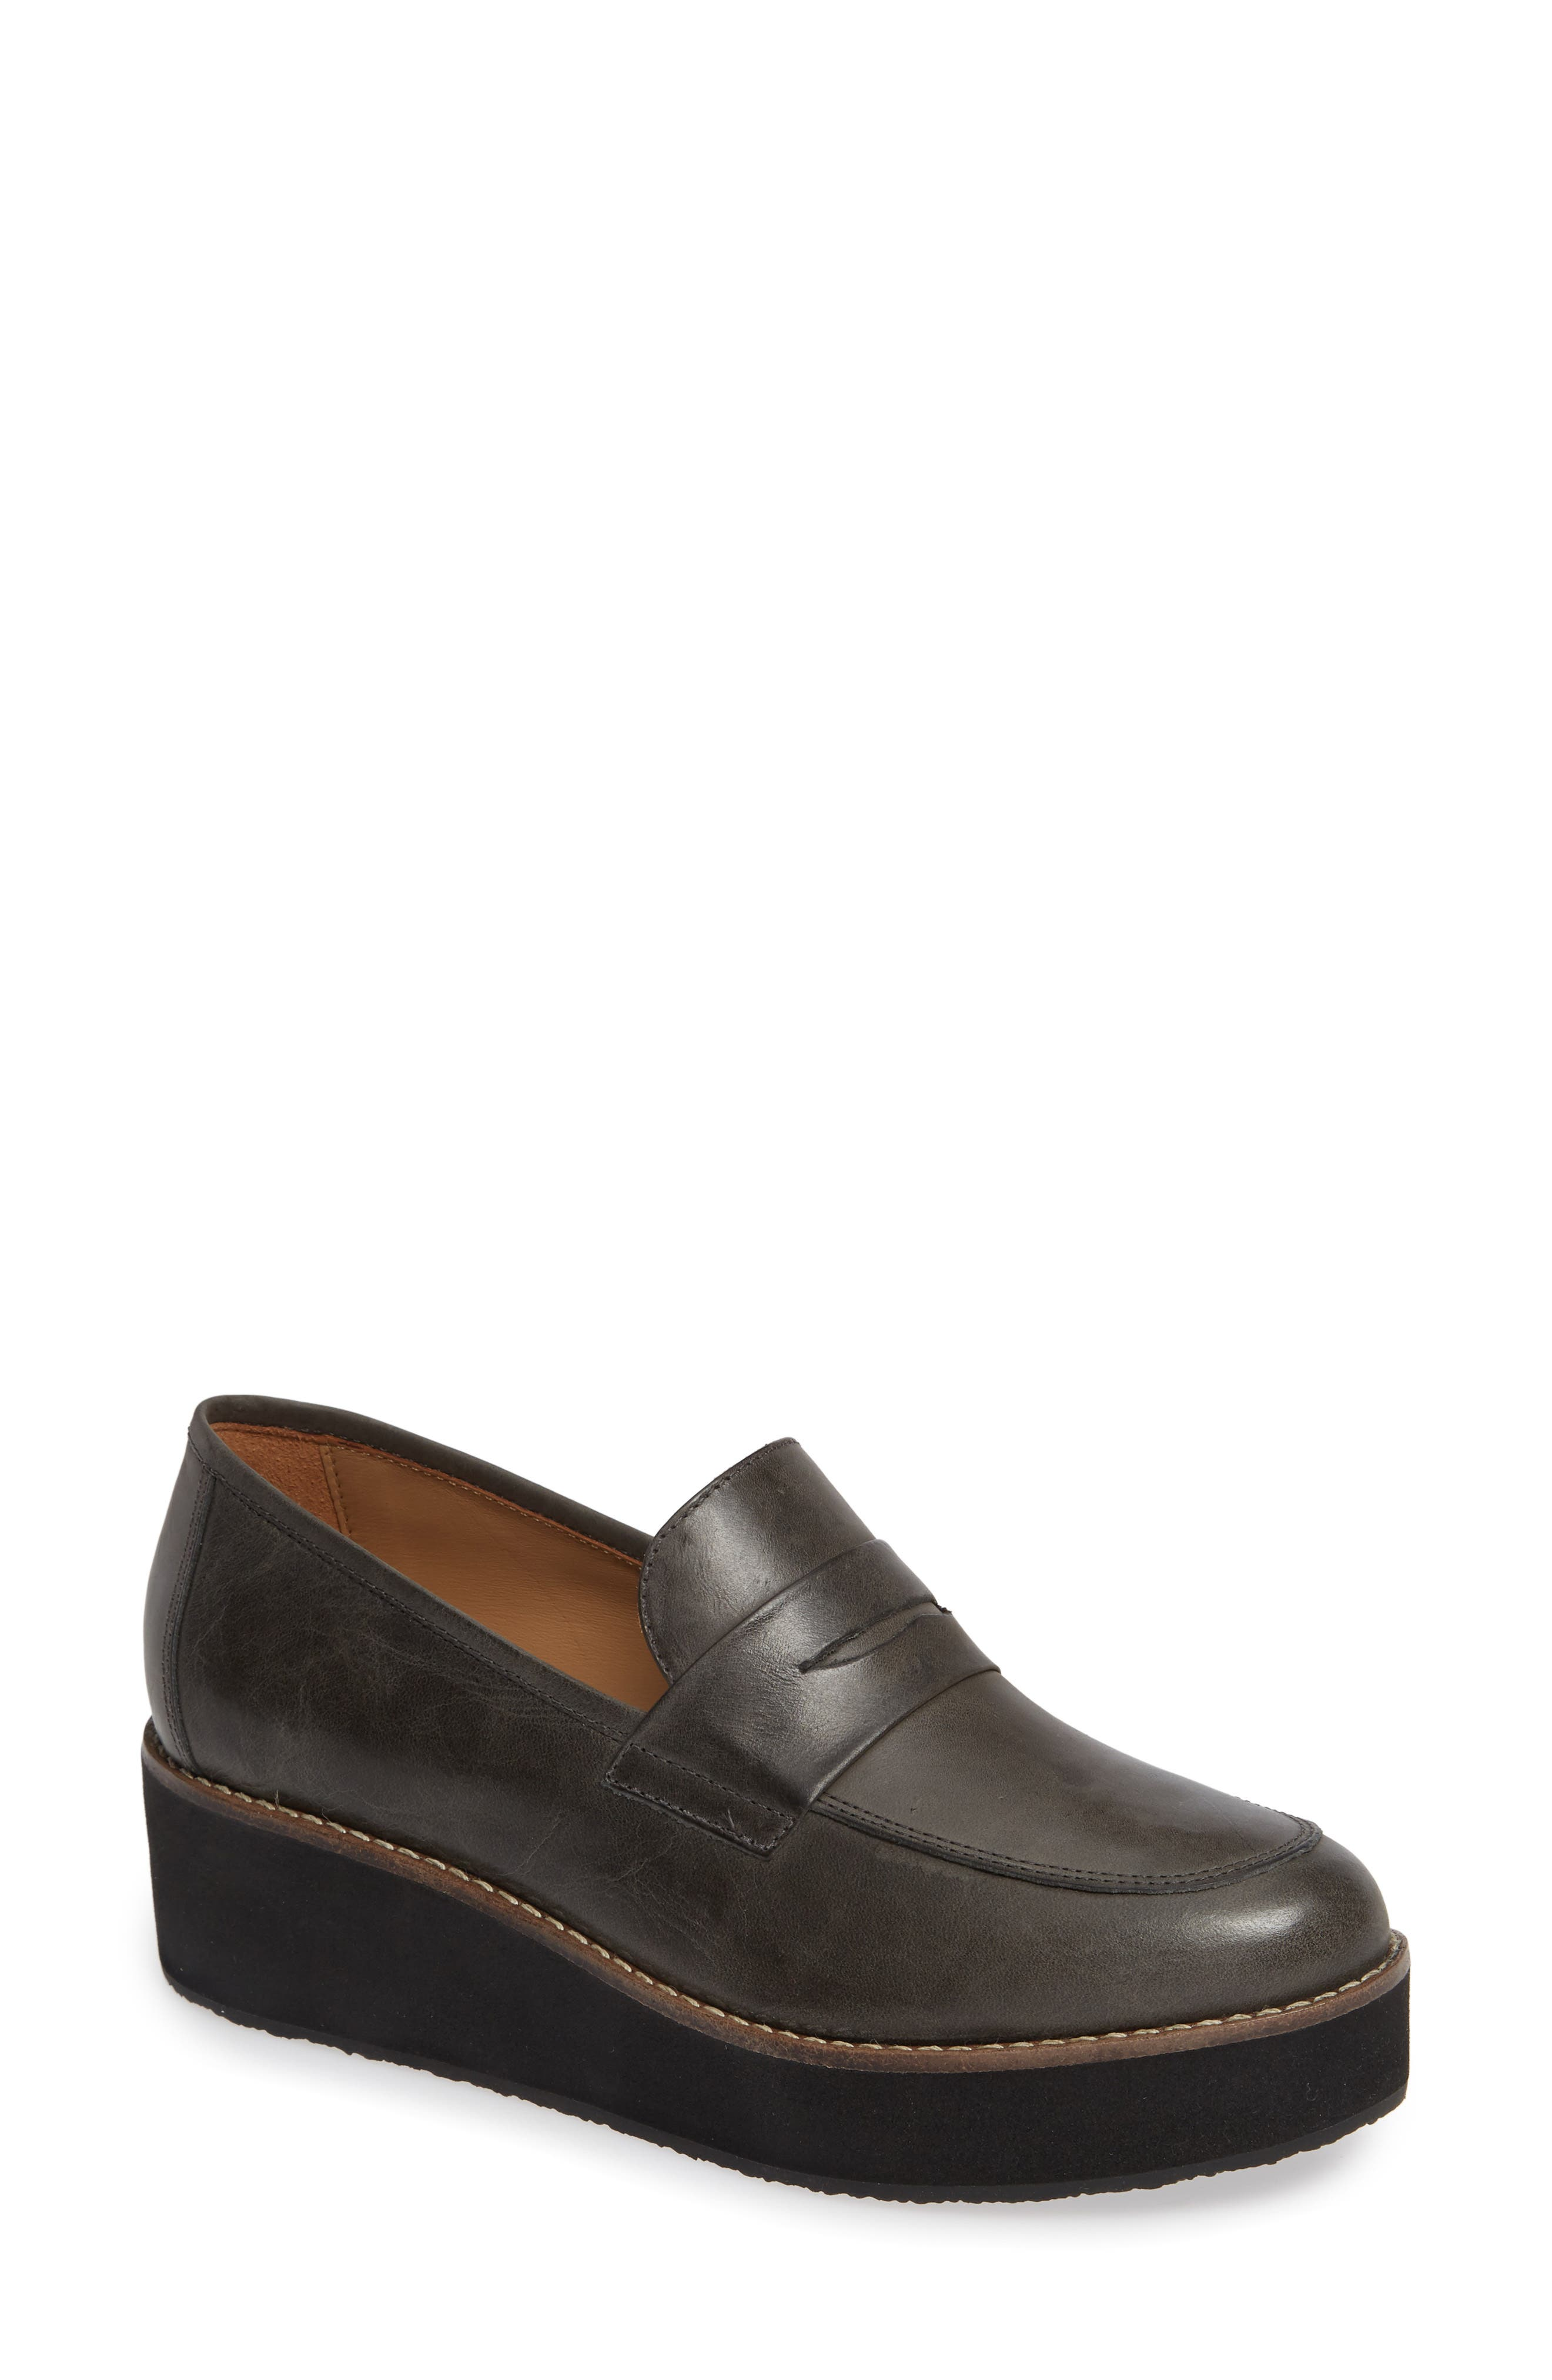 Santiago Platform Penny Loafer, Main, color, BLACK LEATHER